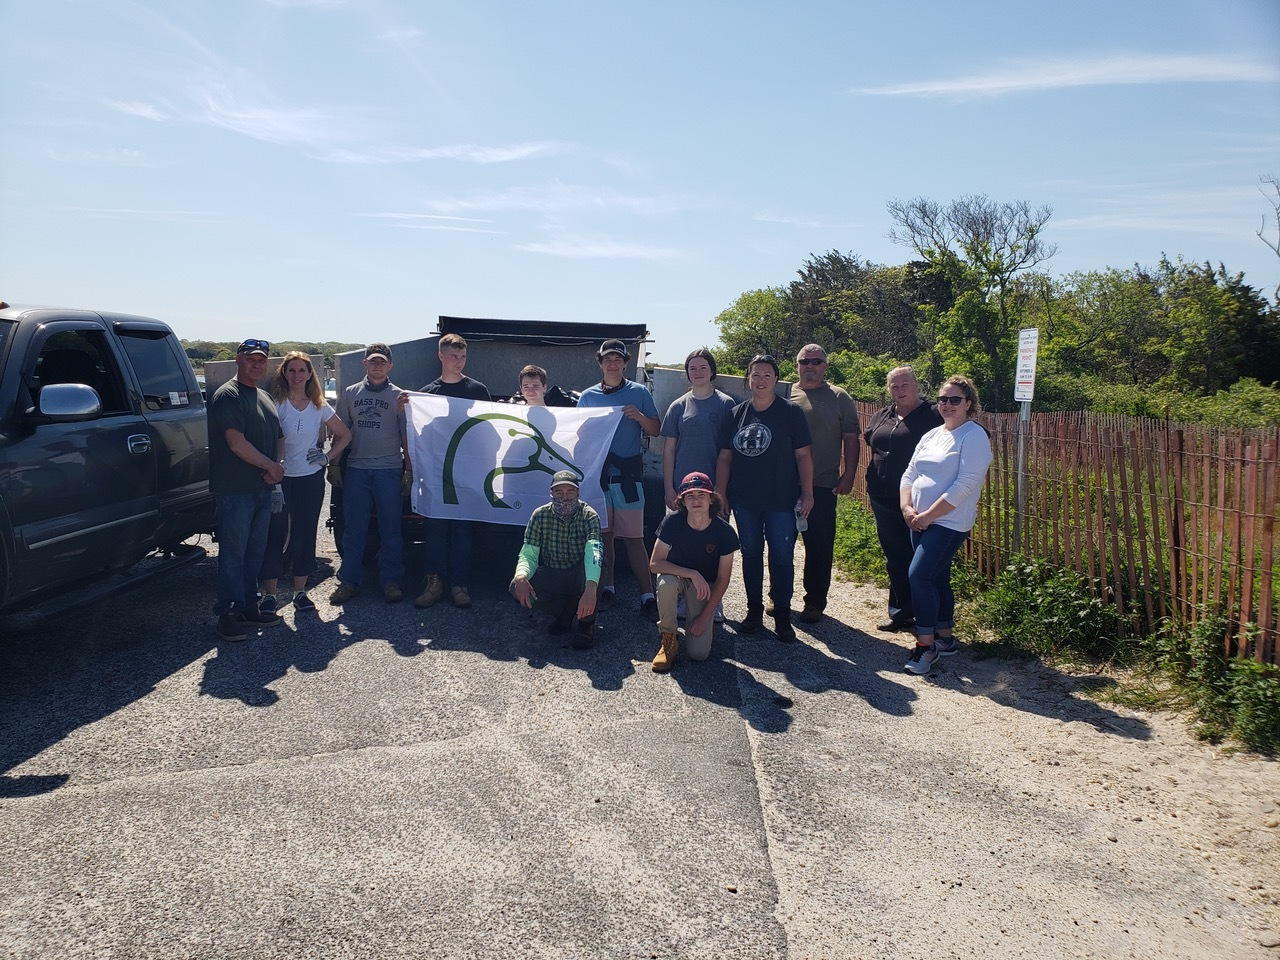 Southampton Town and the Eastern Suffolk chapter of the wetlands conservation organization Ducks Unlimited teamed up for a beach clean-up at Sebonack Inlet and Cold Spring over the weekend.